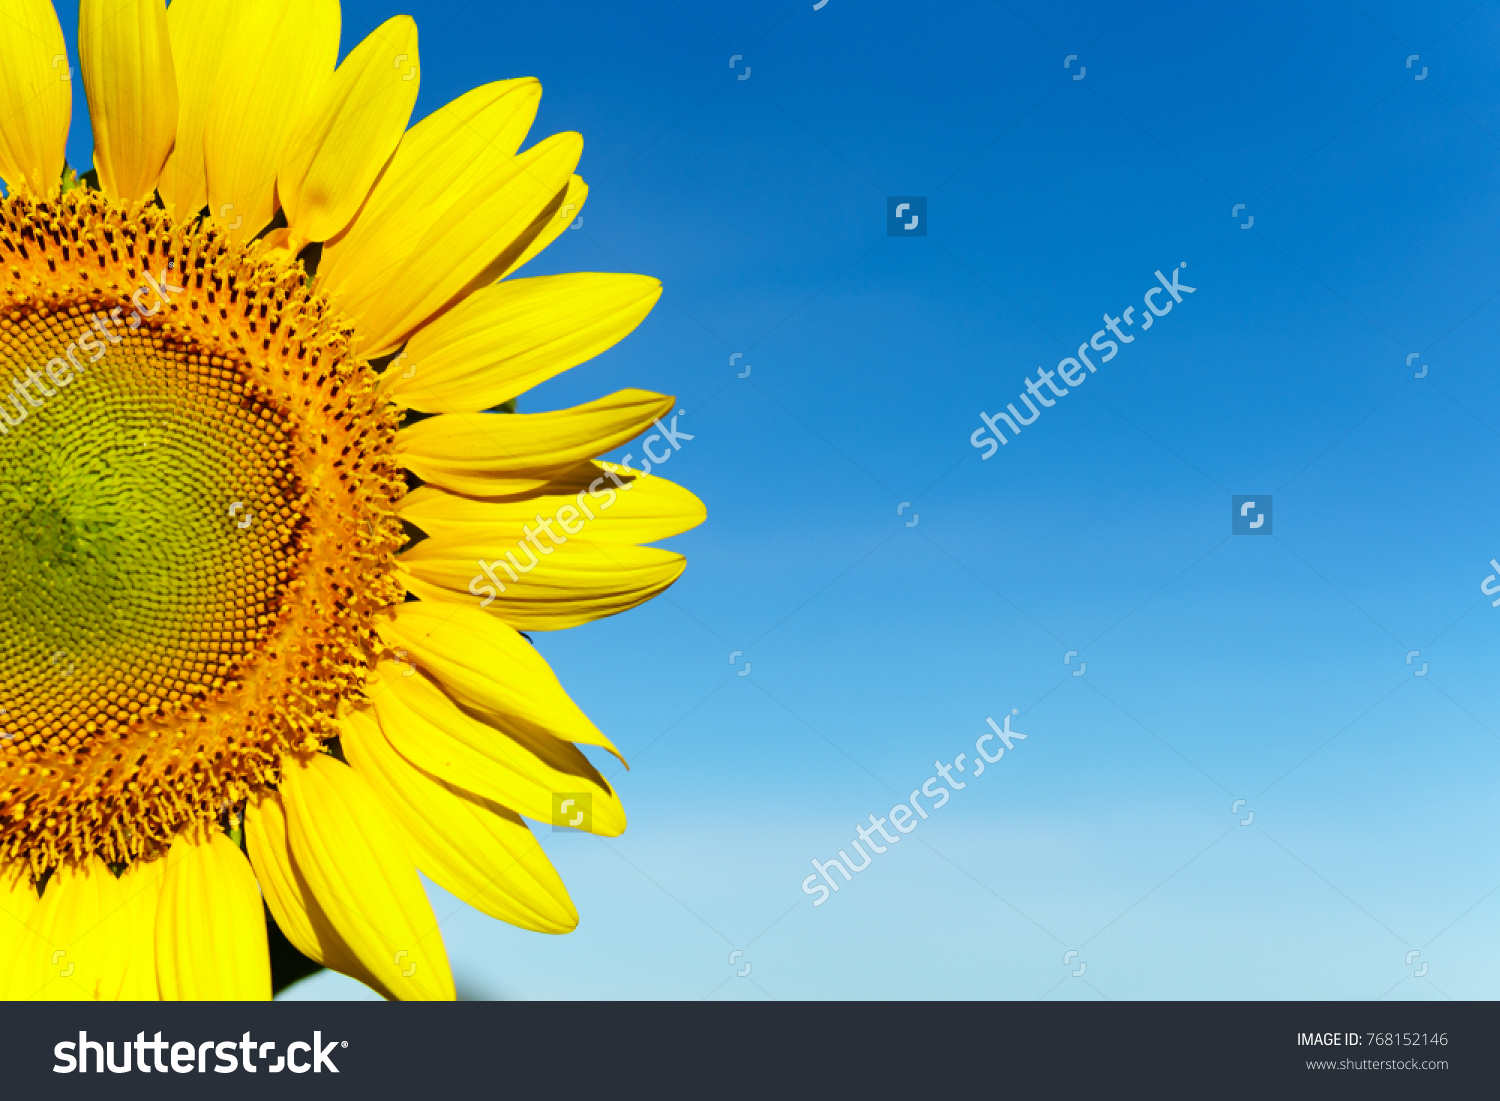 Sunflower with blue sky background. with copy space for your text message #768152146